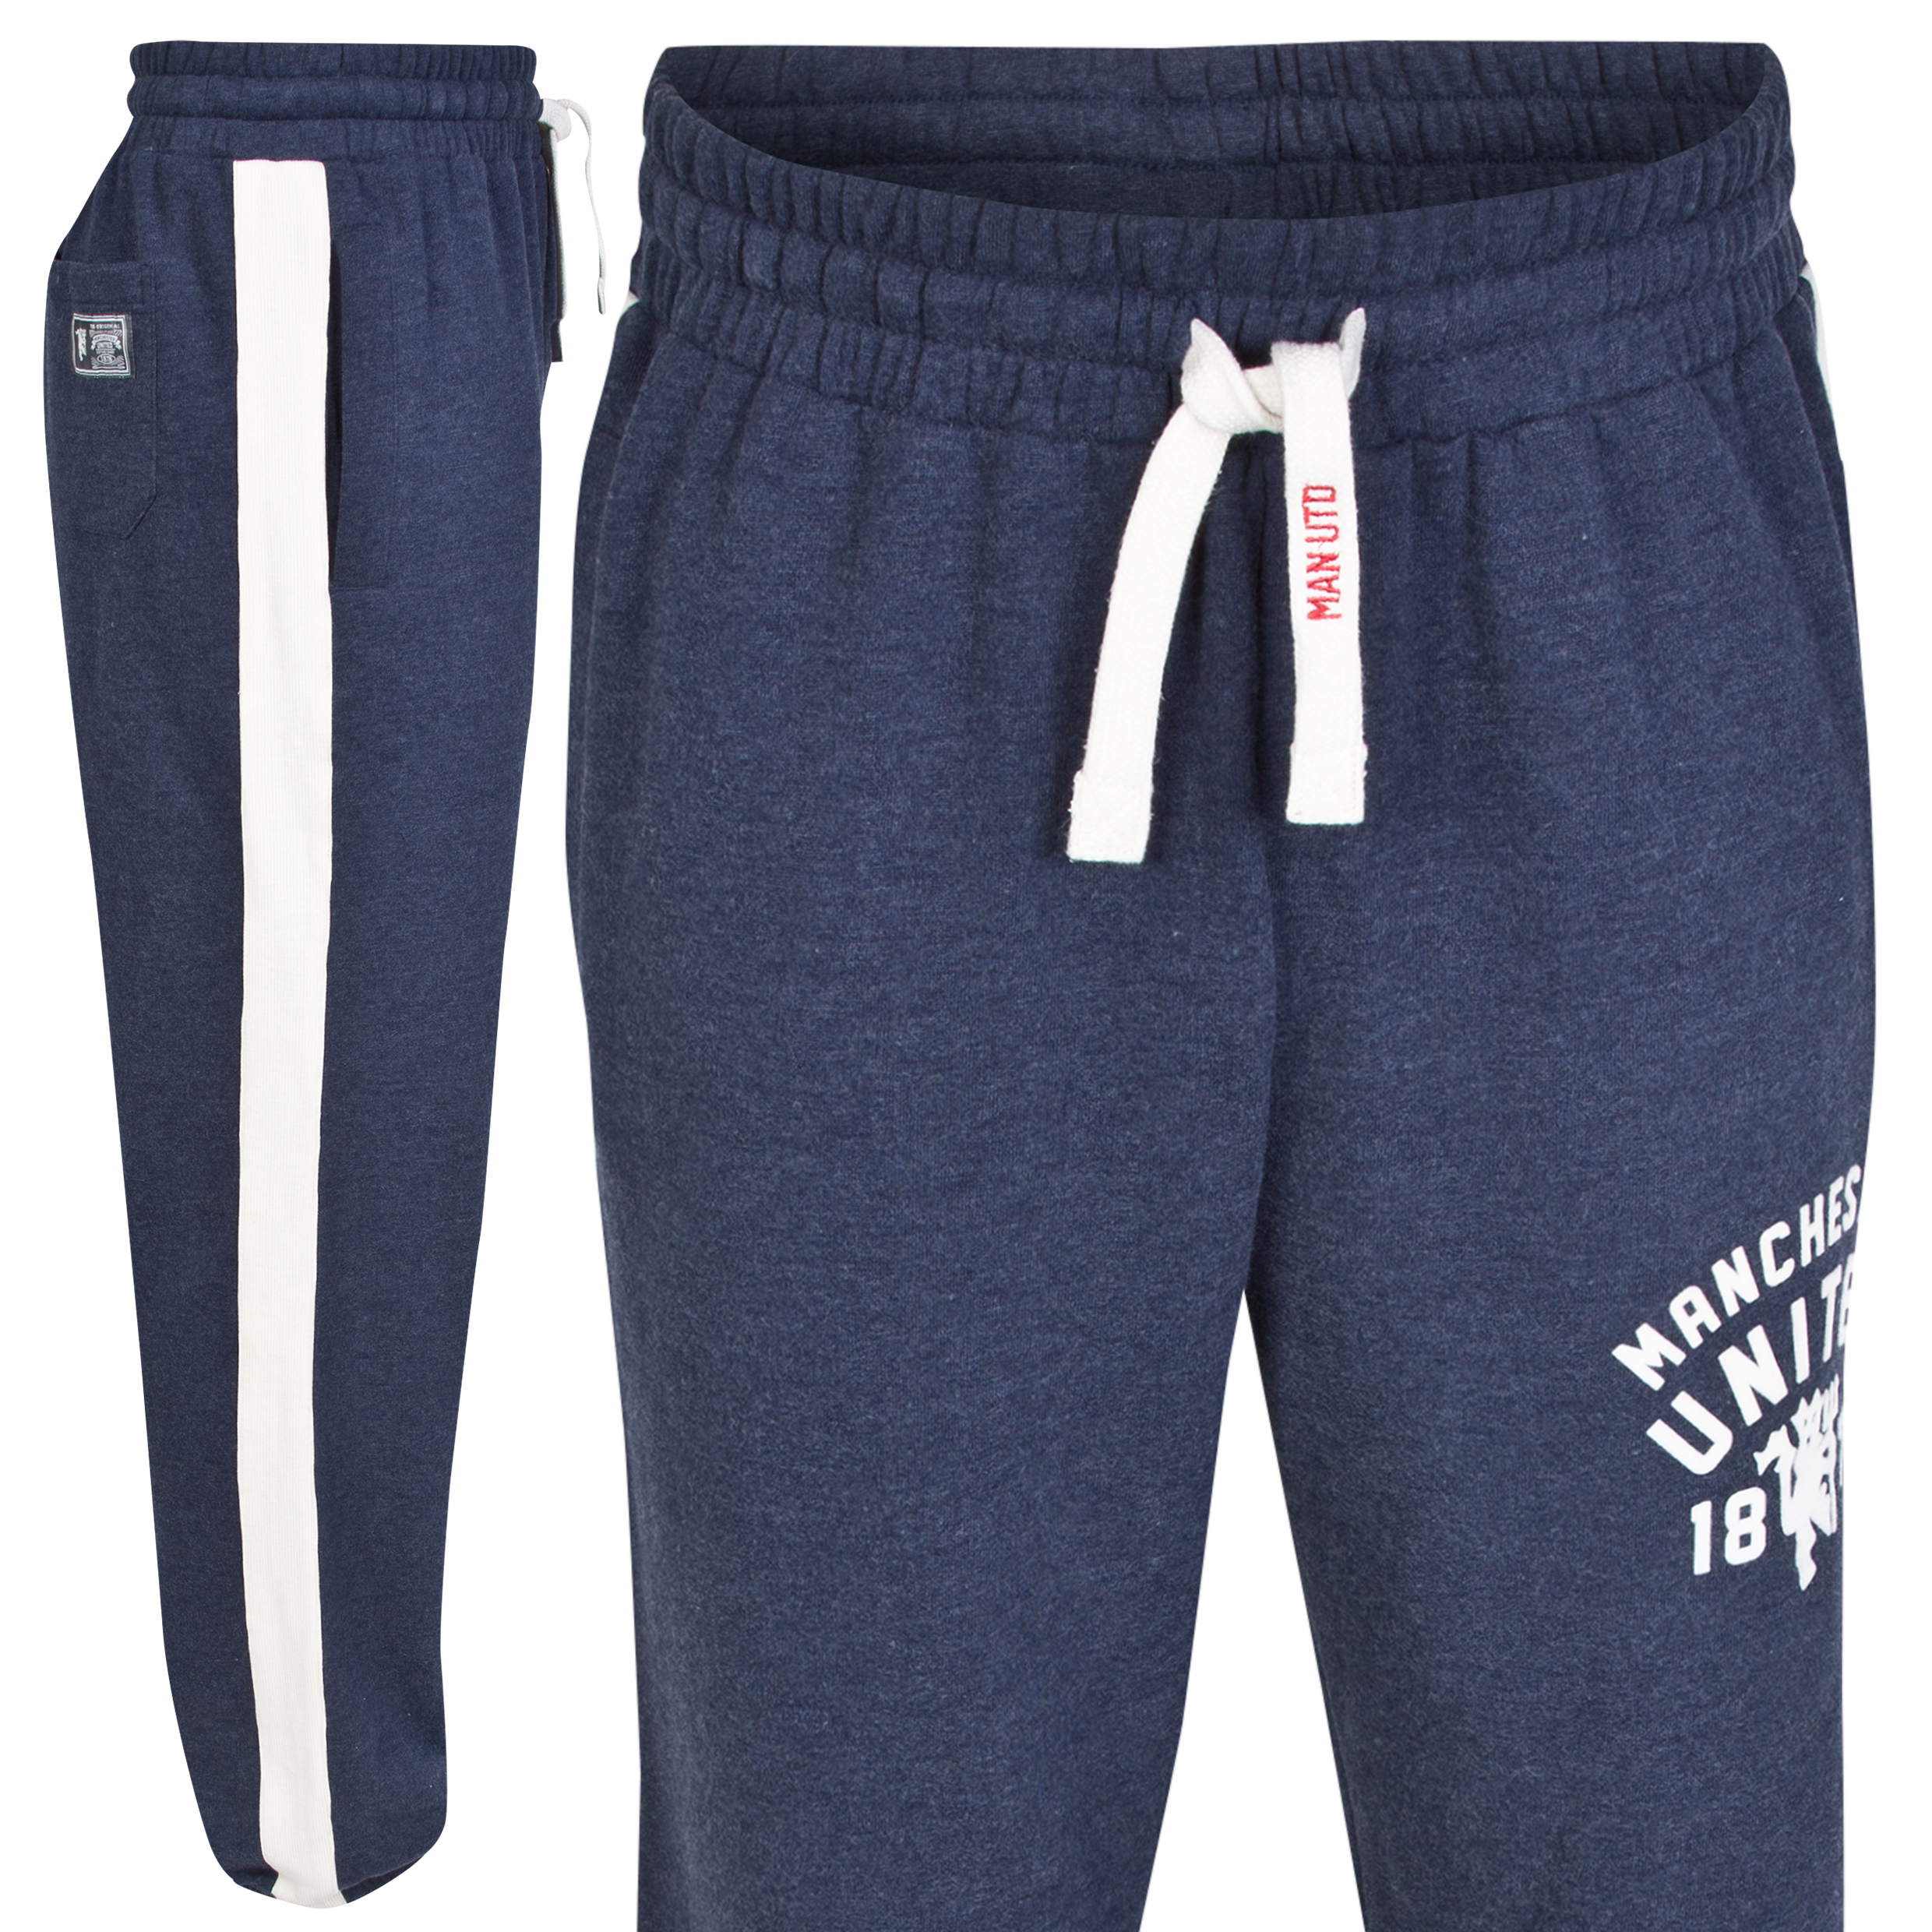 Manchester United Heritage Joggers - Heather Navy - Mens